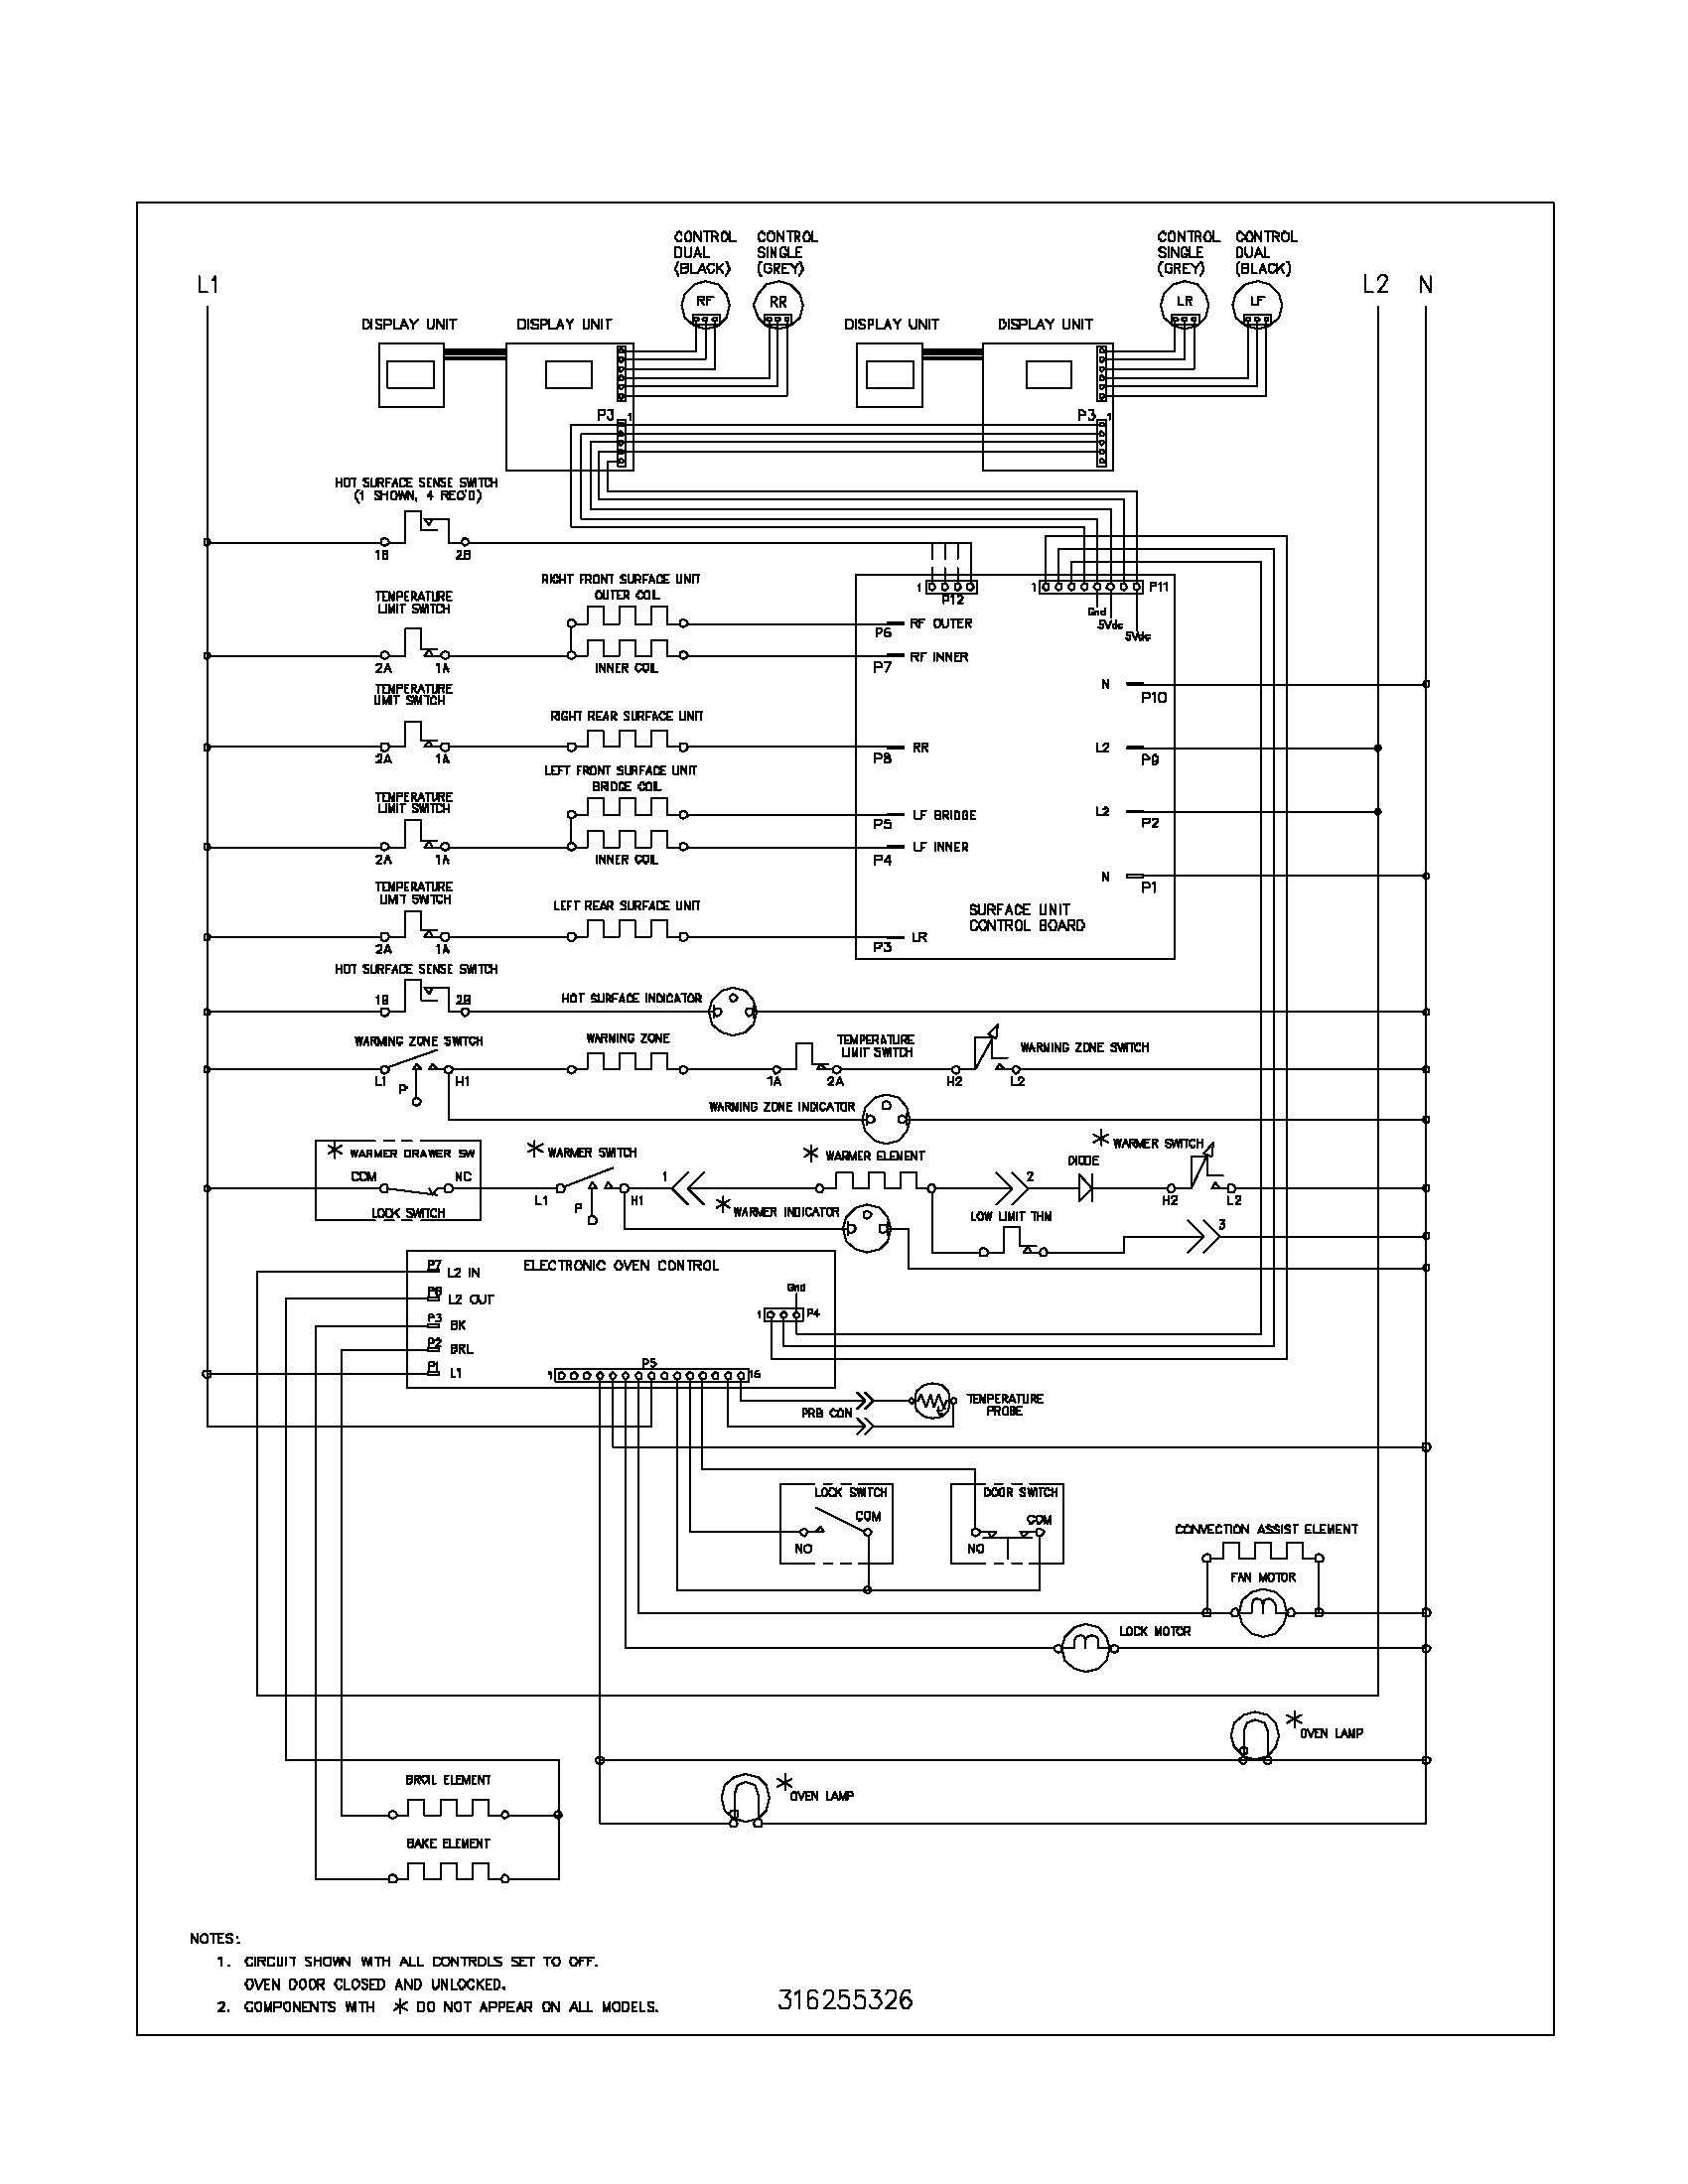 Heat Sequencer Wiring Diagram Inspirational Electric Furnace Fan